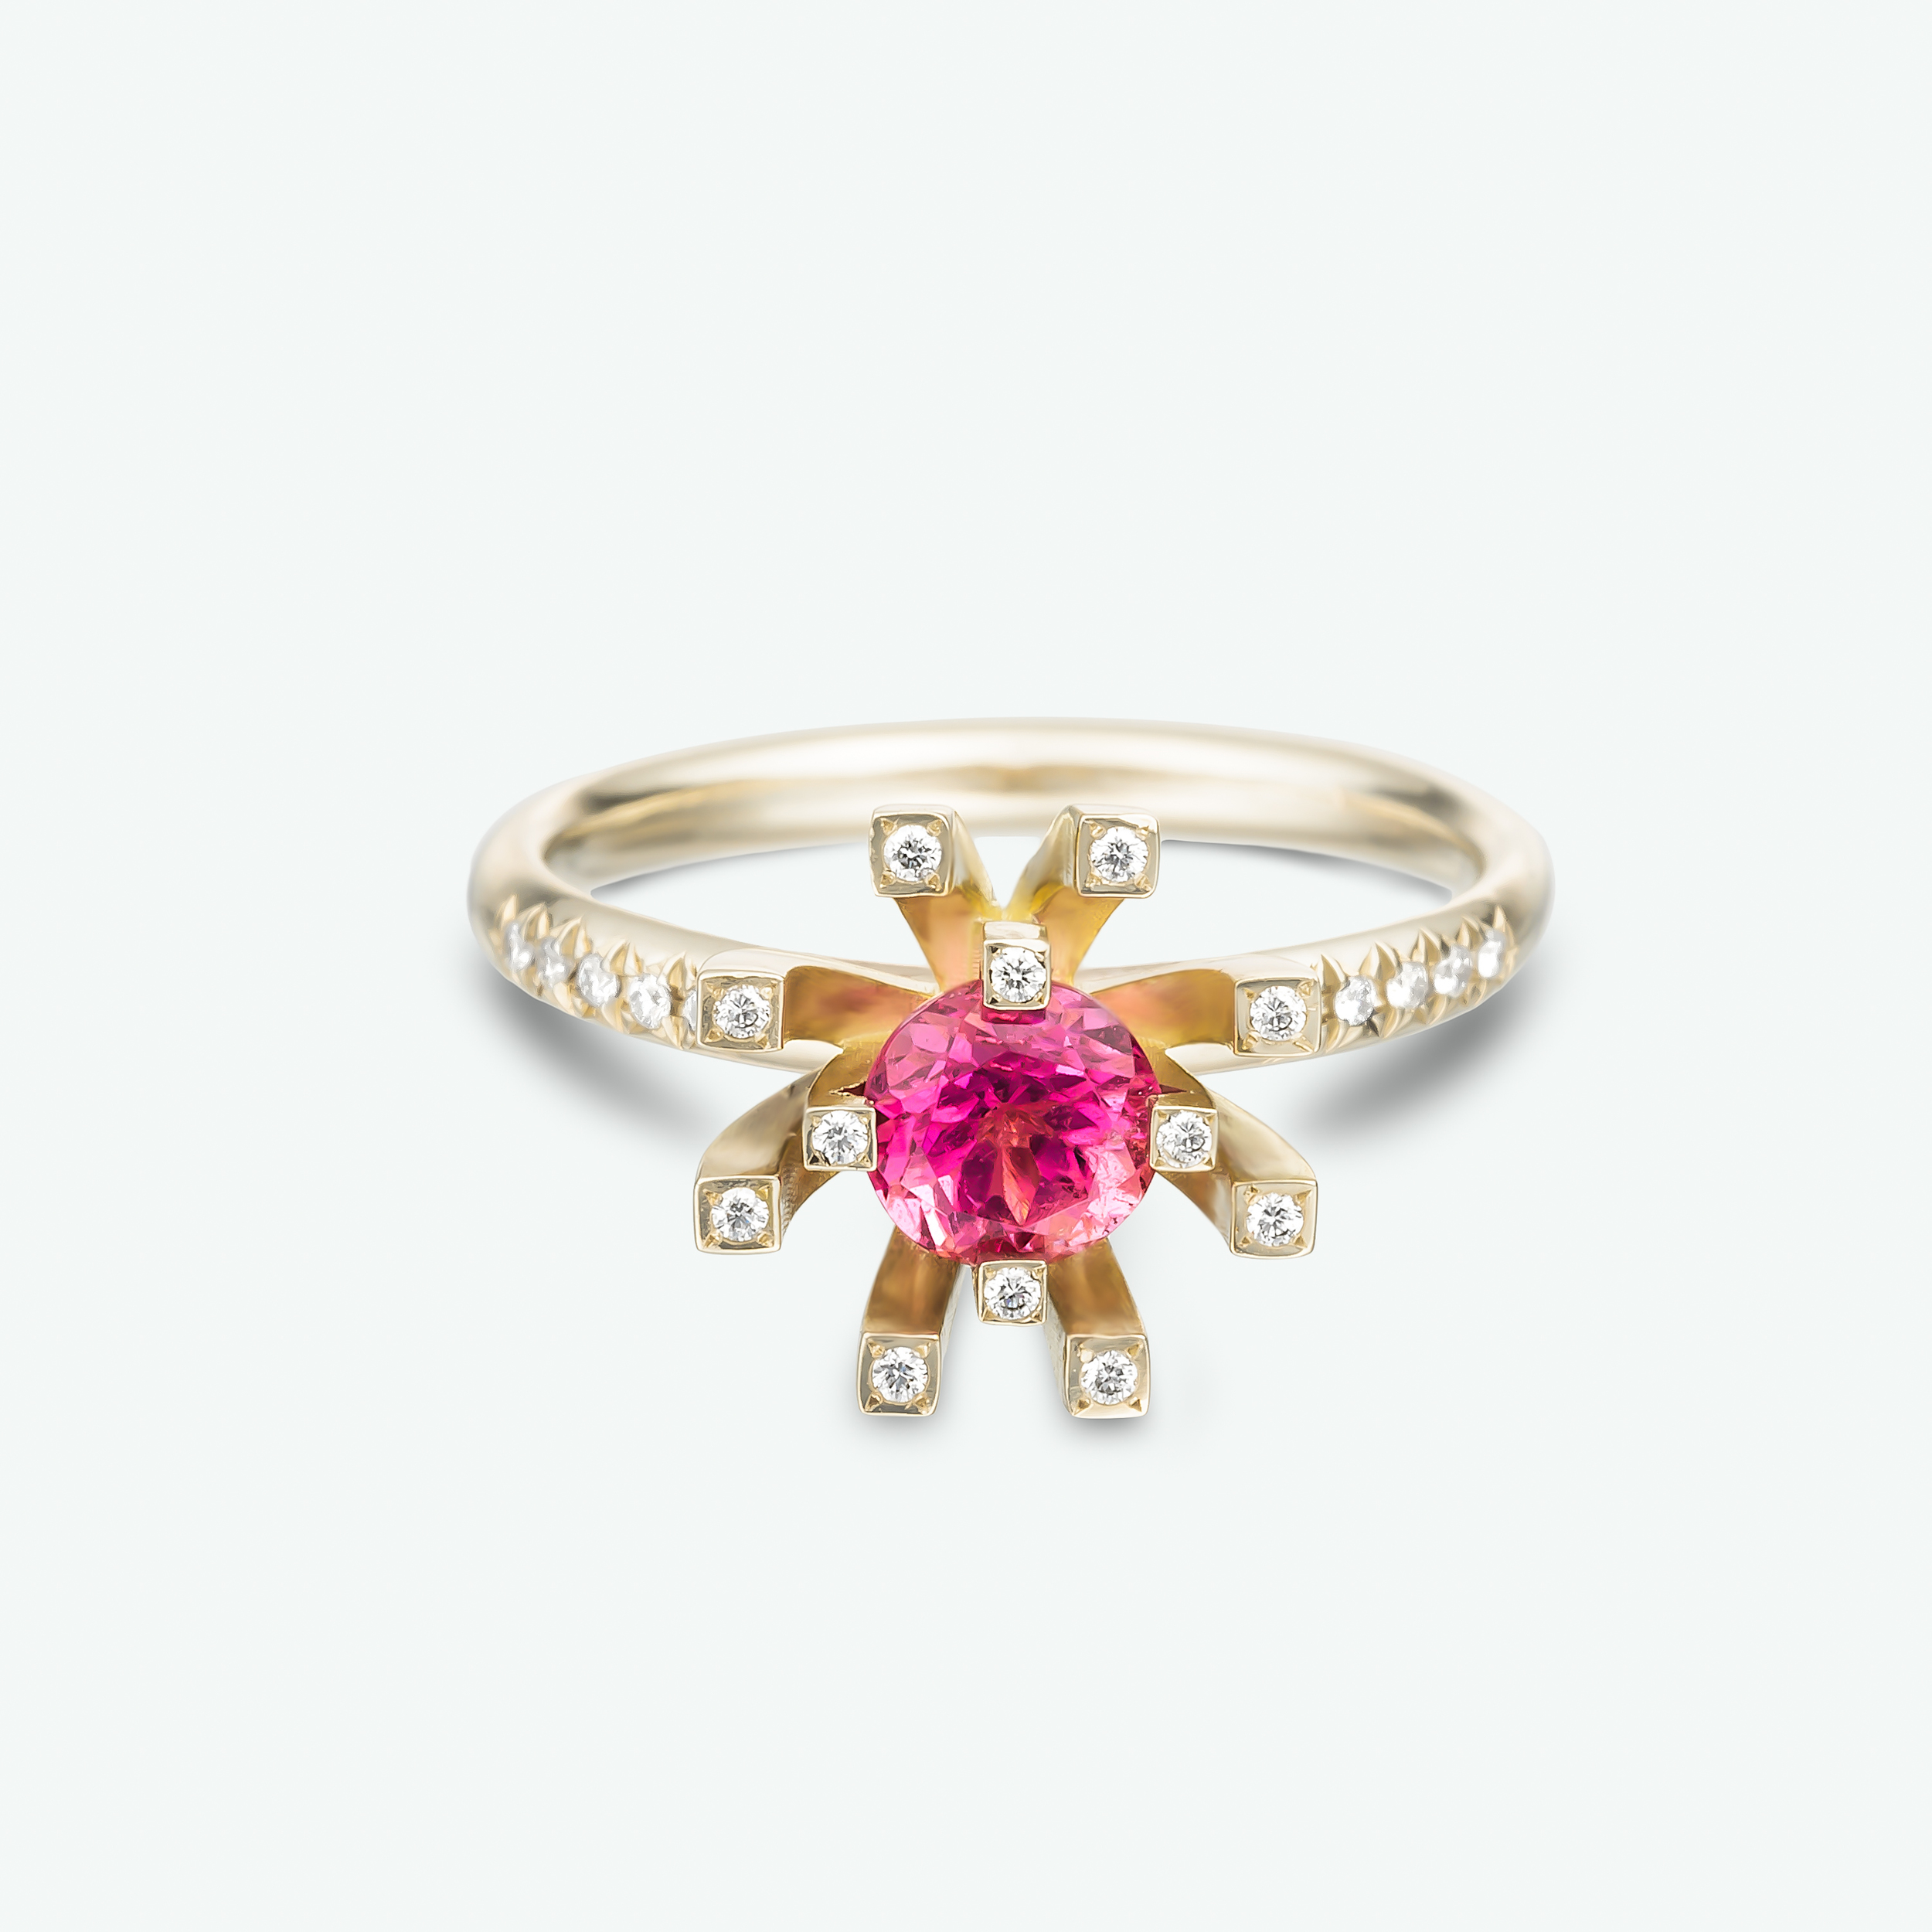 A stunning solitaire pink engagement ring composed of a vivid pink tourmaline and brilliant white diamonds set in a white gold unique diamond halo engagement ring.D: 0.11 ct.     PT: 0.45 ct.